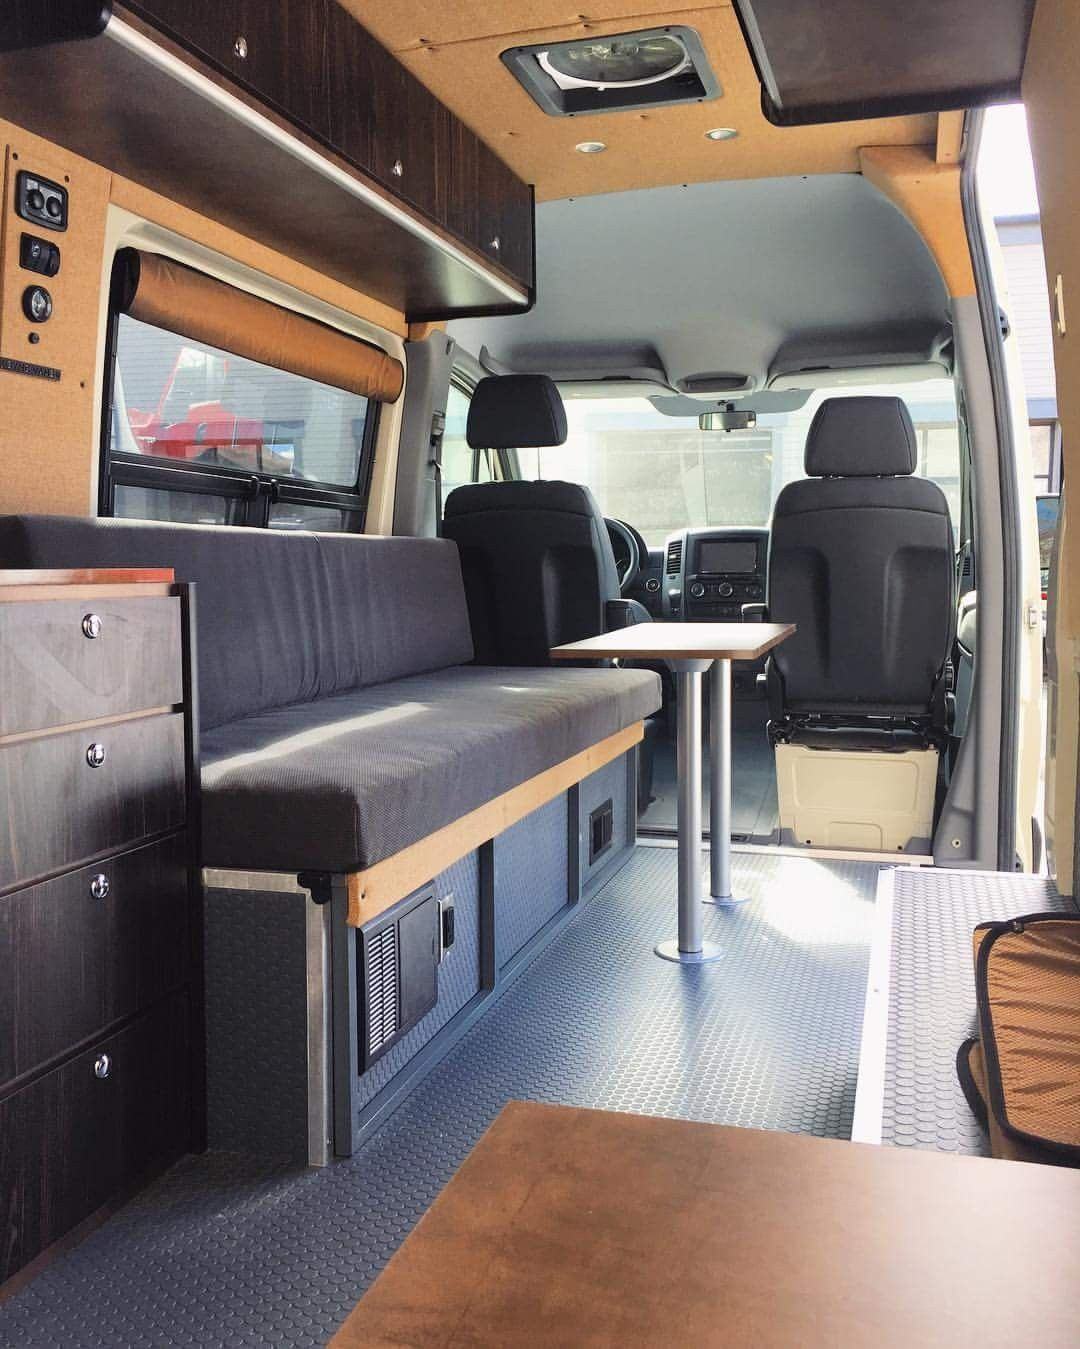 Class B RV Interior Of Converted Camper Van Chevy Project And Discussion Forum Best Sprinter Conversion Design